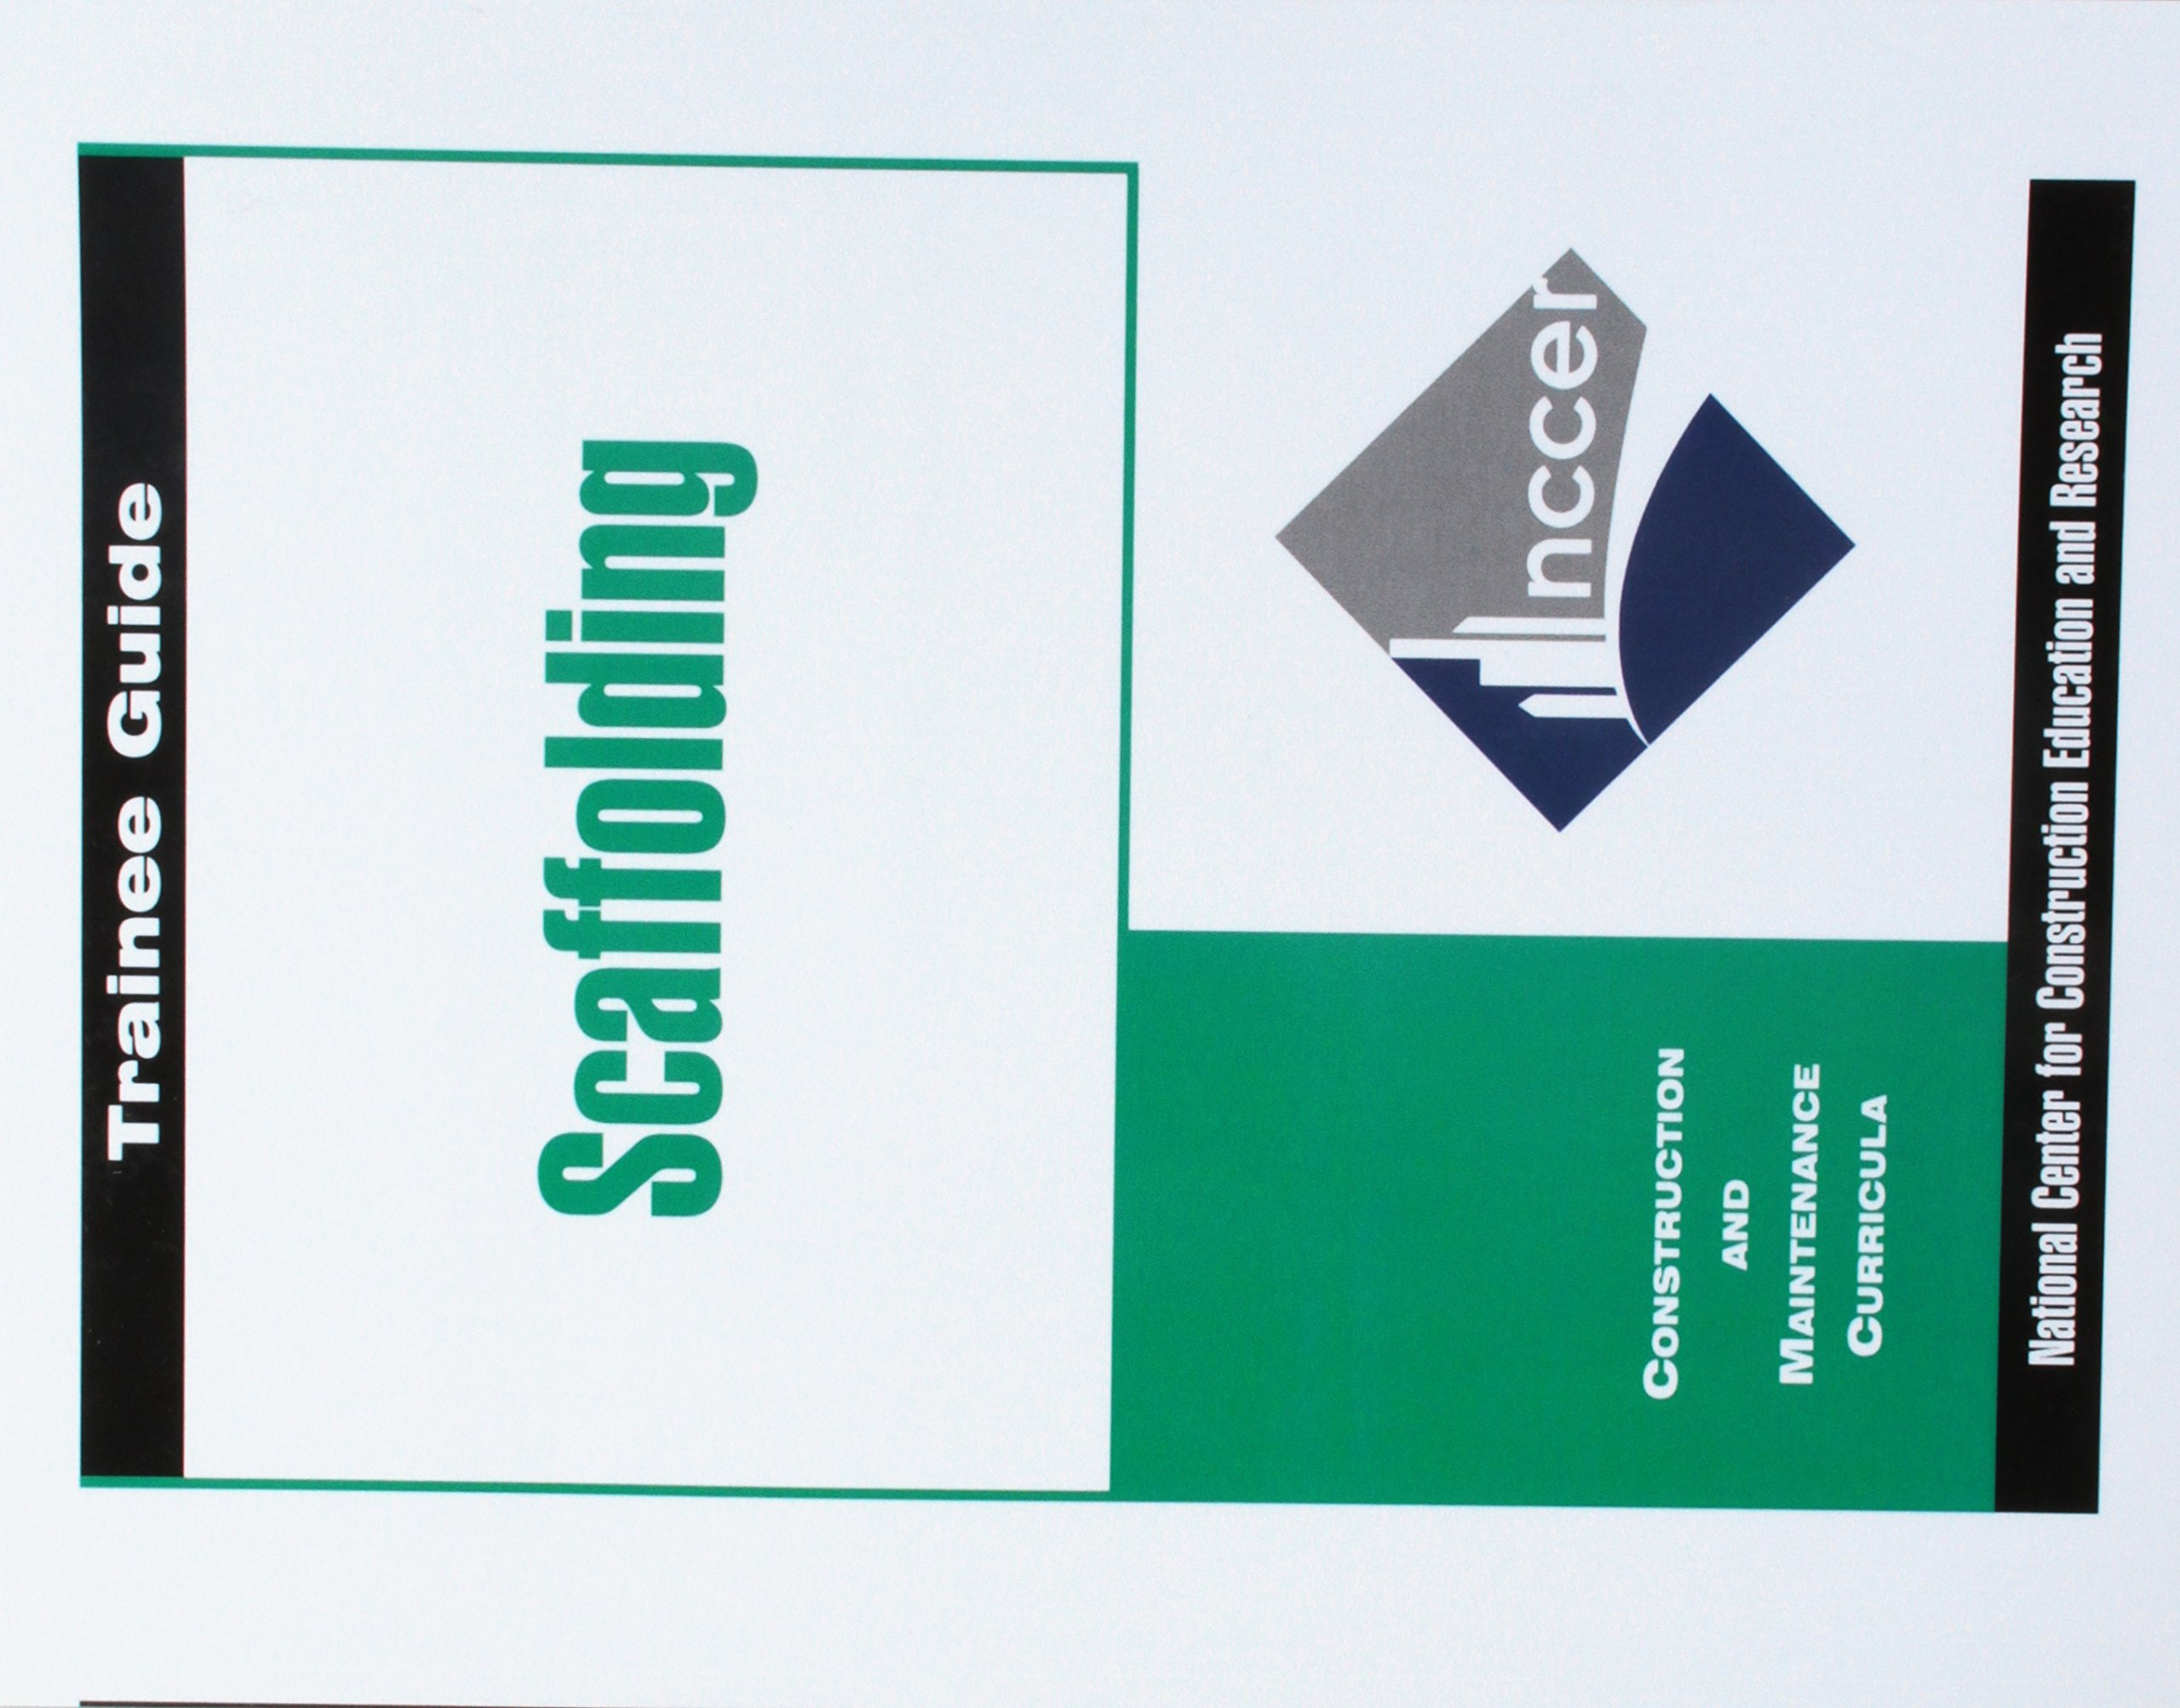 Scaffolding Level 1 Trainee Guide, Paperback: NCCER